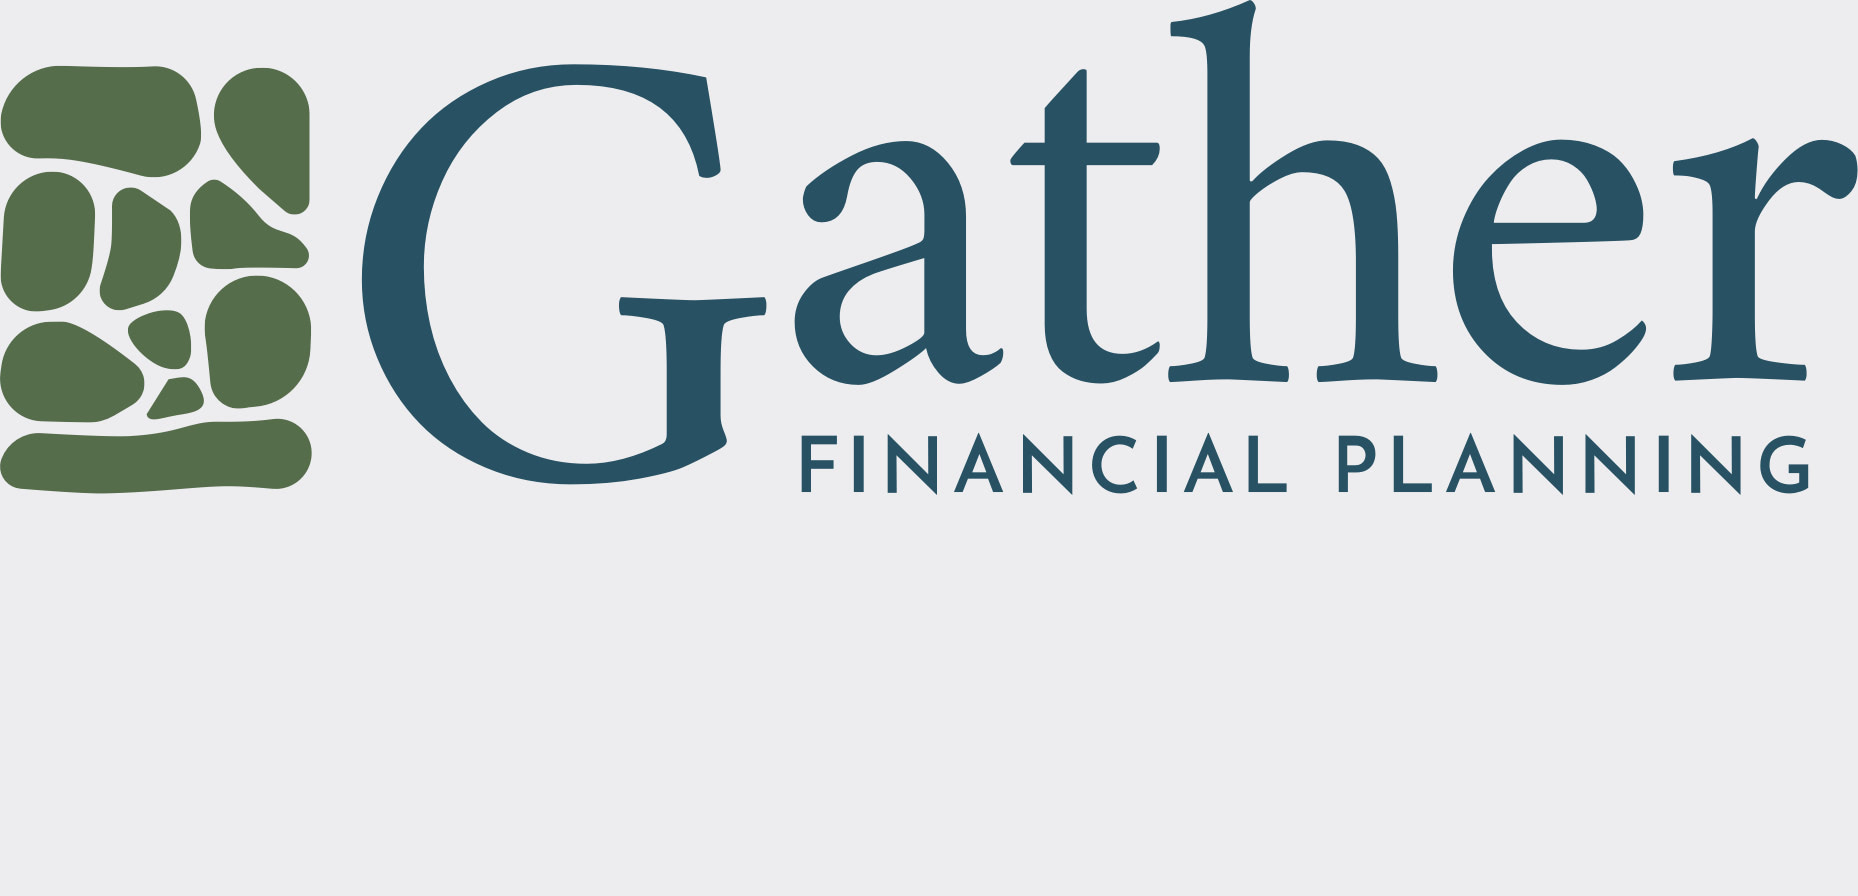 Gather Financial™ Planning logo with a flat logo mark comprised of assembled stones, followed by the text 'Gather' in large serif type, 'Financial Planning' in small sans-serif type.